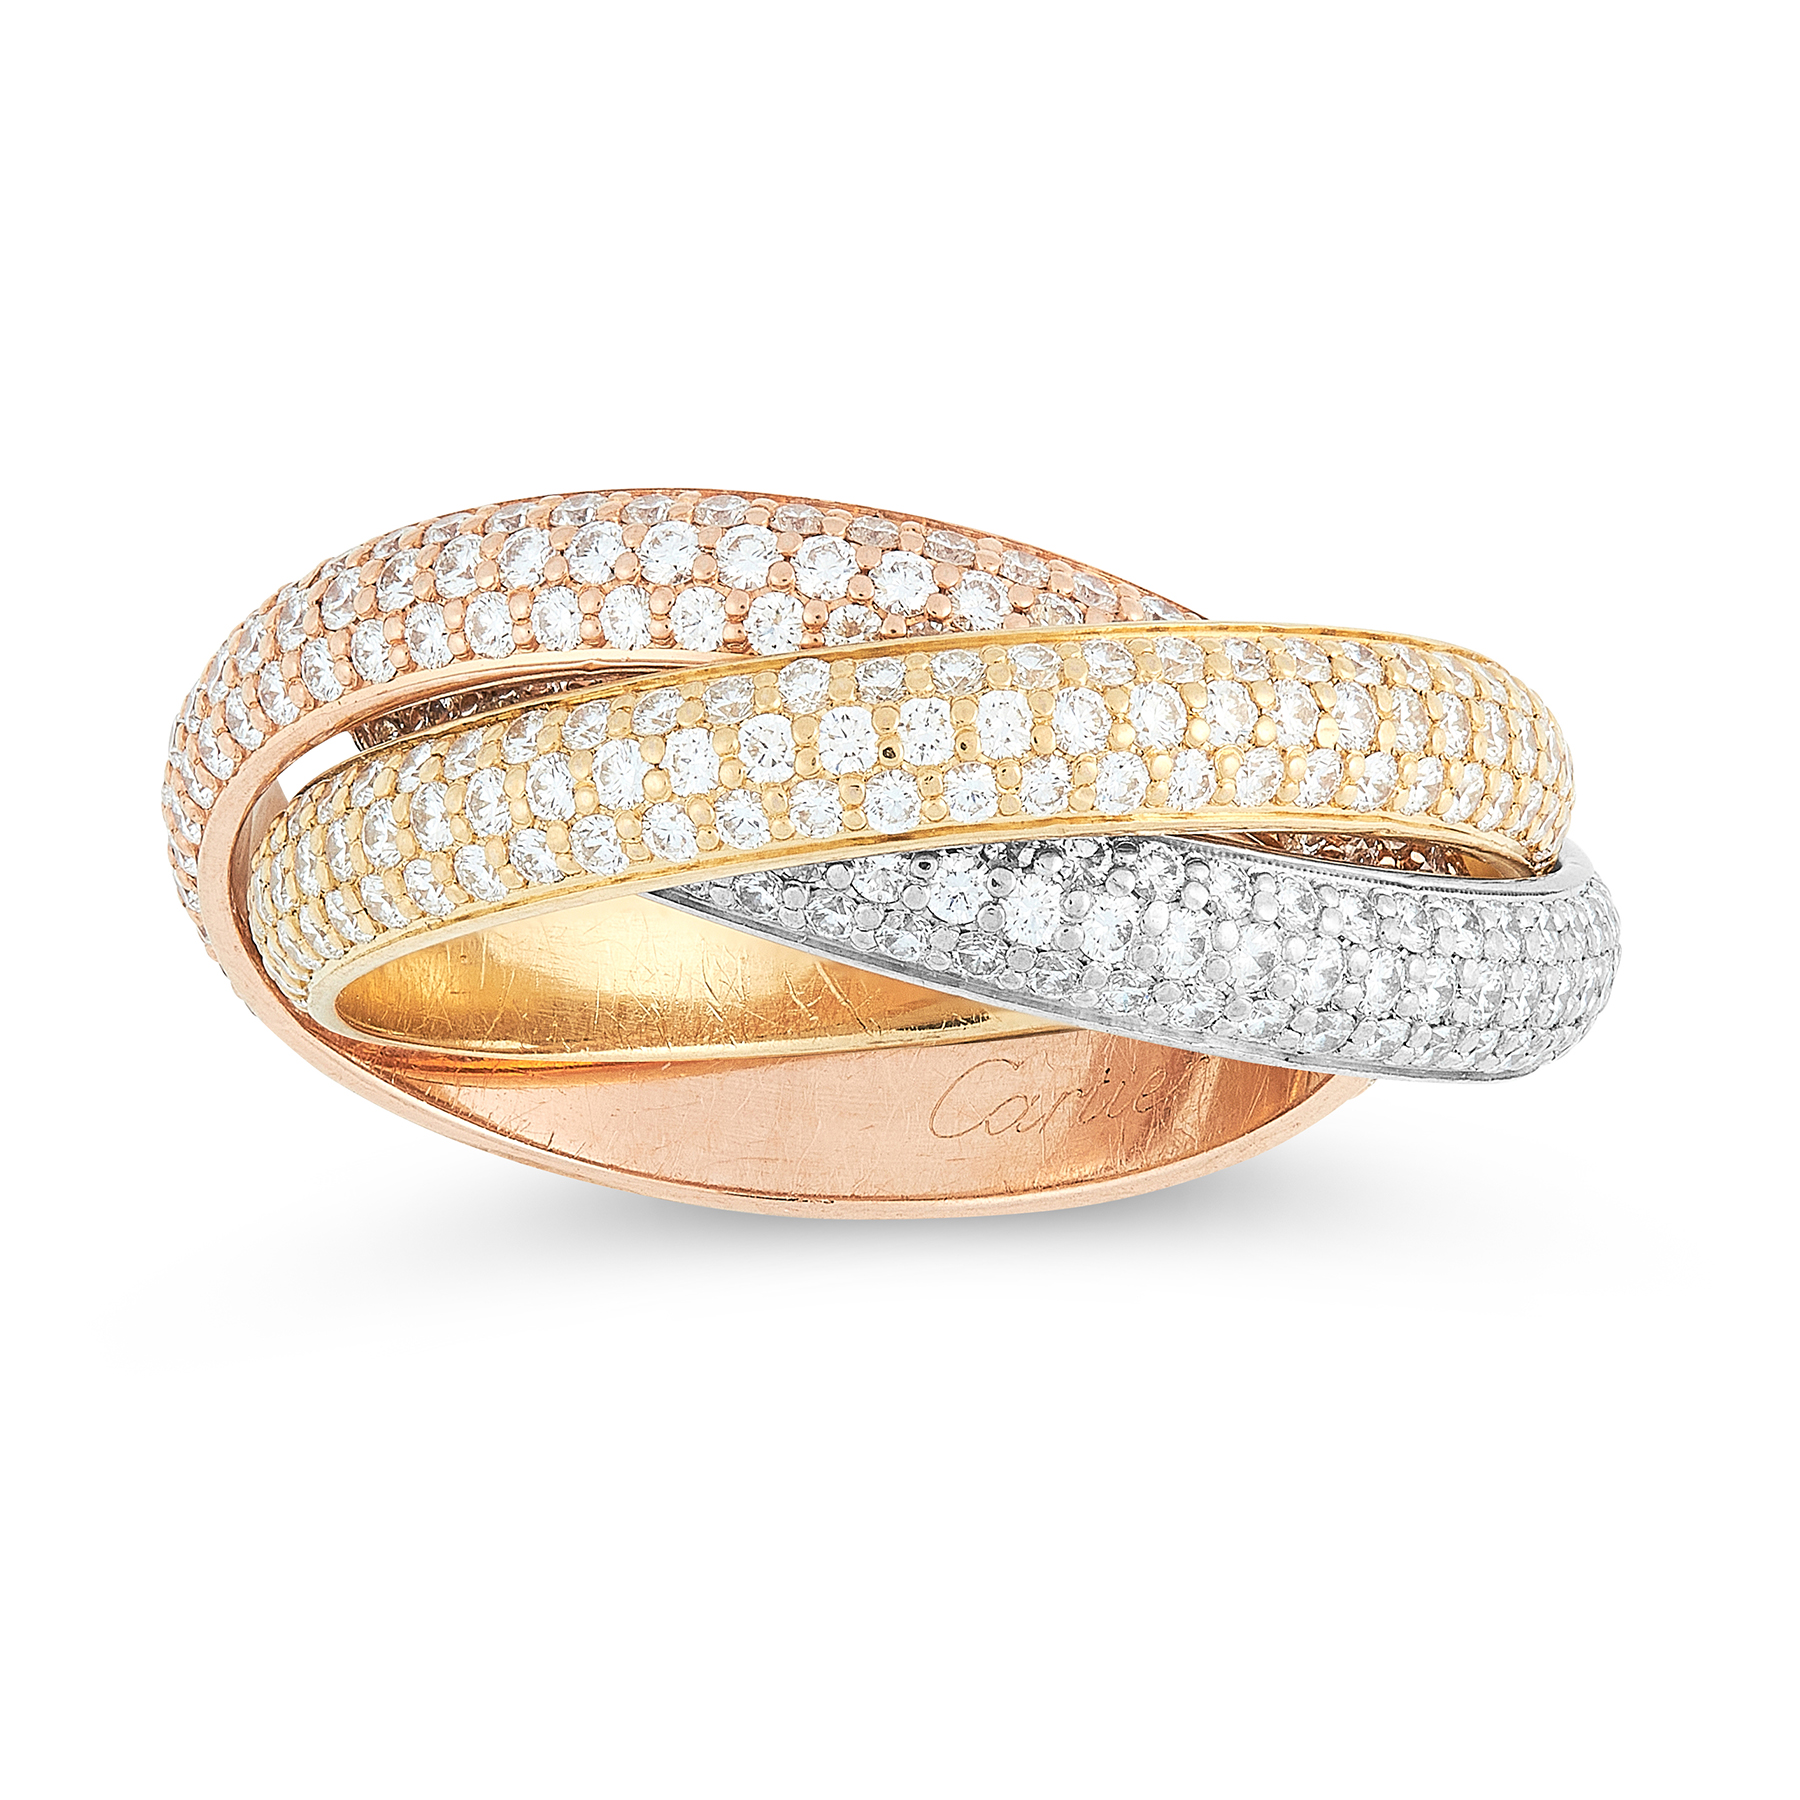 A TRINITY DE CARTIER DIAMOND RING, CARTIER in 18ct yellow, white and rose gold, comprising a trio of